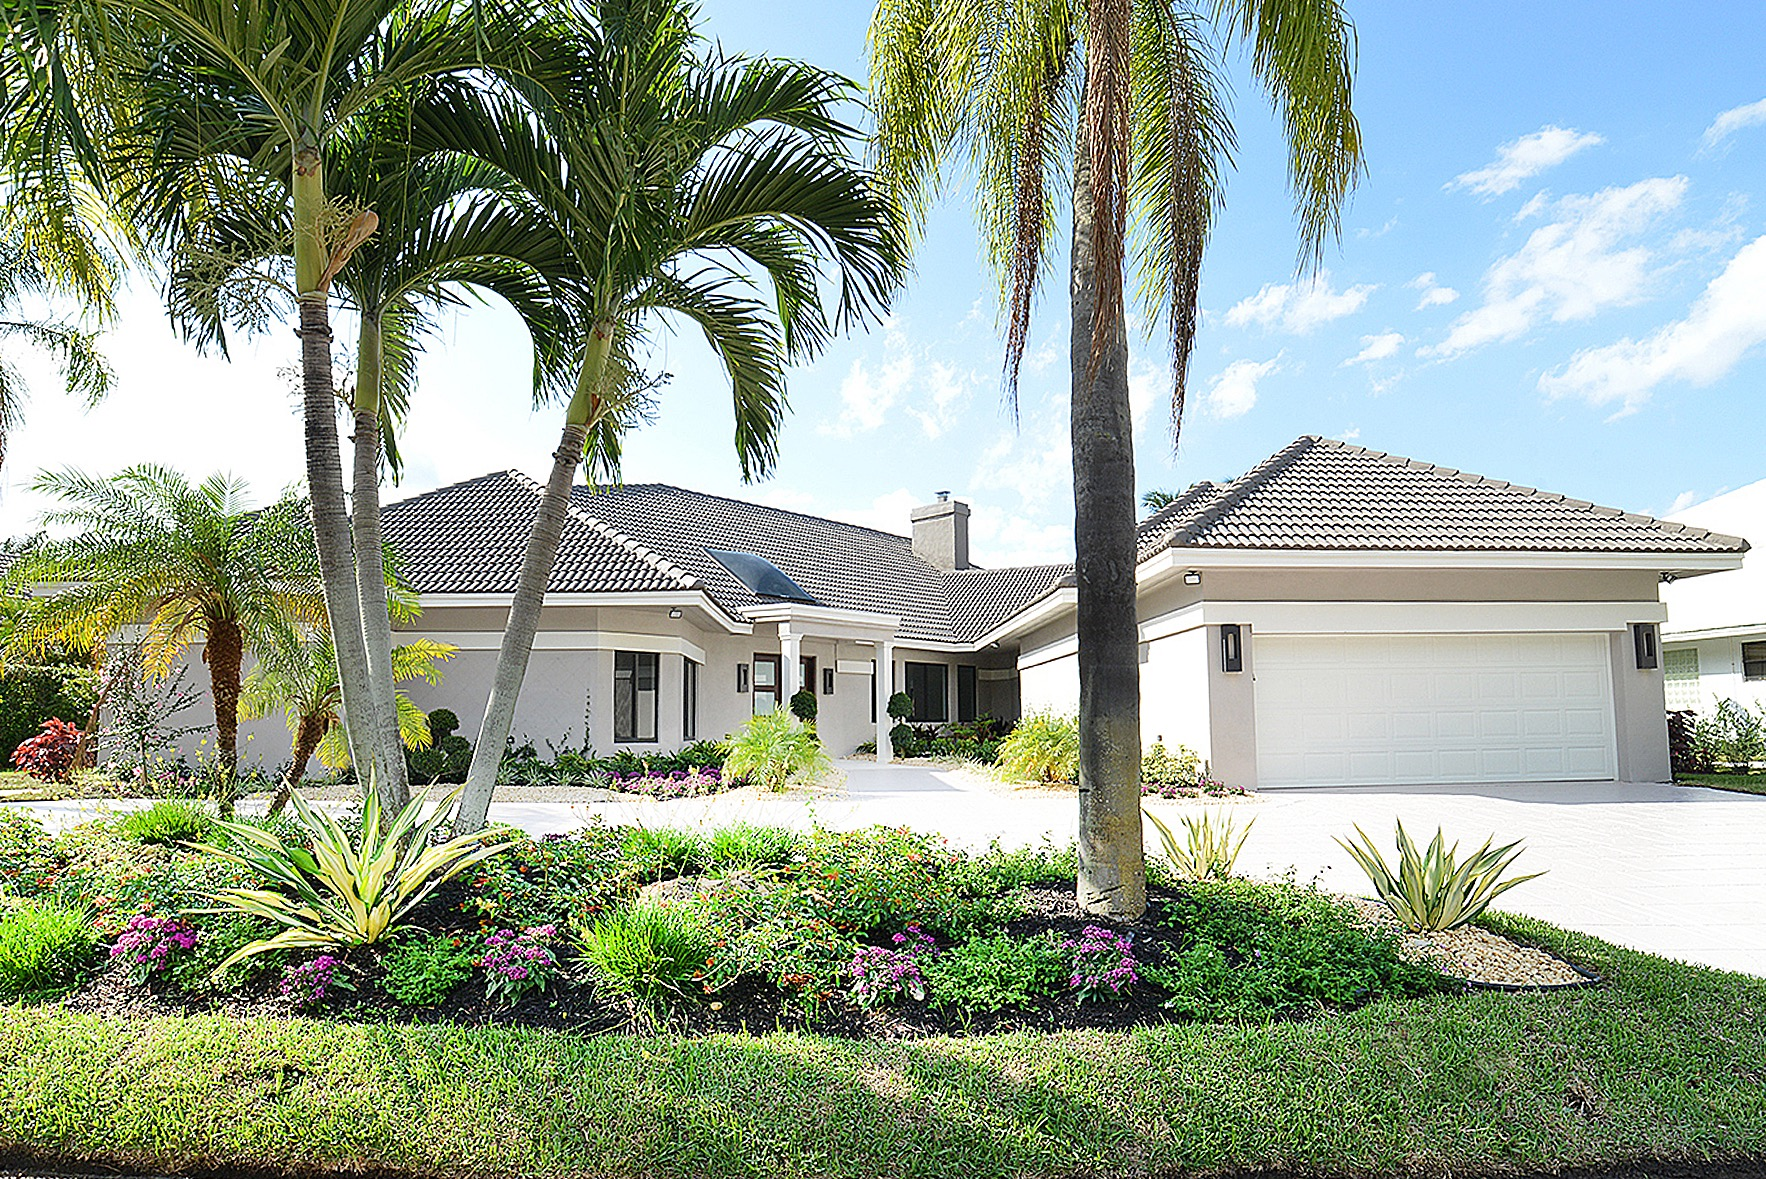 mag real estate & development construction general contractor builder renovation south florida boca raton new custom luxury home for sale interior design st. andrews country club 7026 ayrshire lane 2.jpg